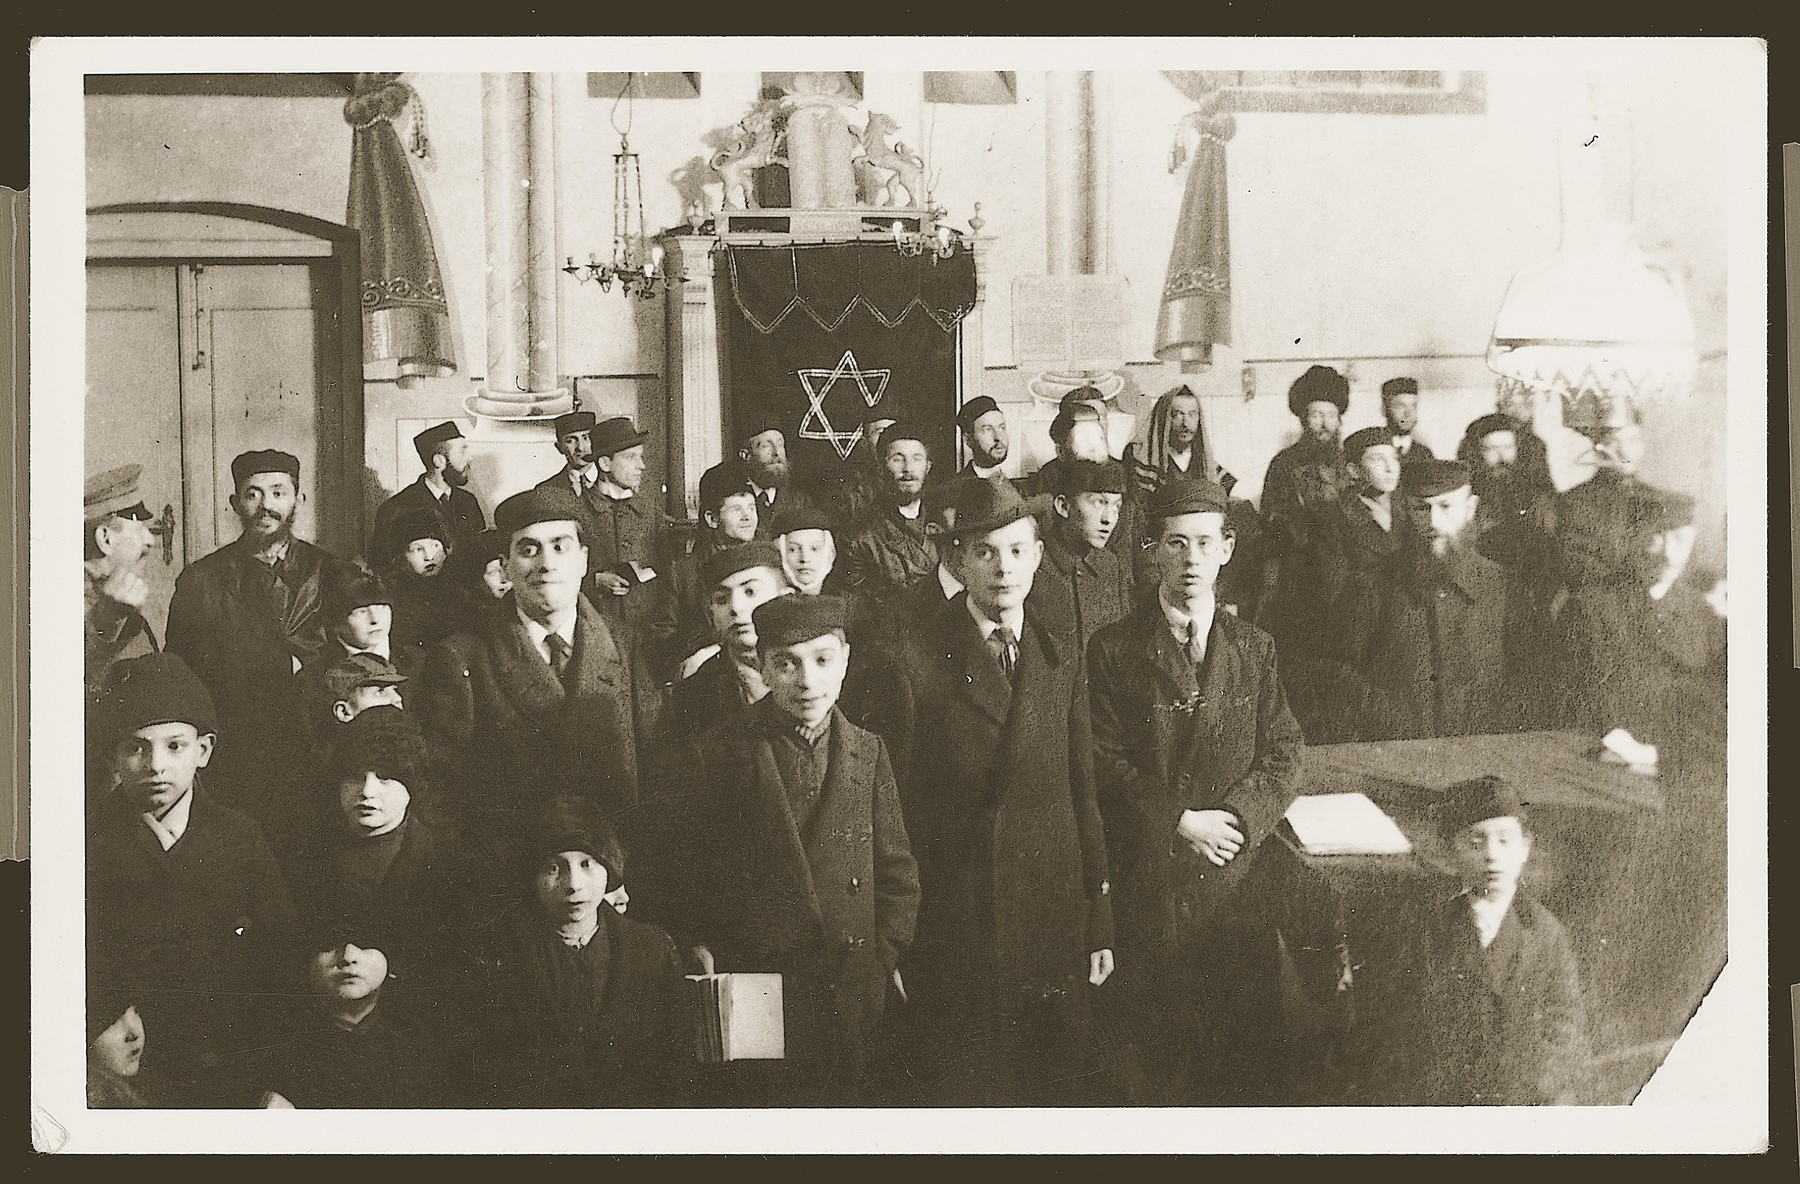 Religious men and boys pose in the Czeladz synagogue.  This picture was taken during WW I by a German soldier.  Standing close to the wall on the right side with the fur hat , is the town's rabbi  Rabbi Lippman Hersh (Eliezer Zwi) Lewenthal.